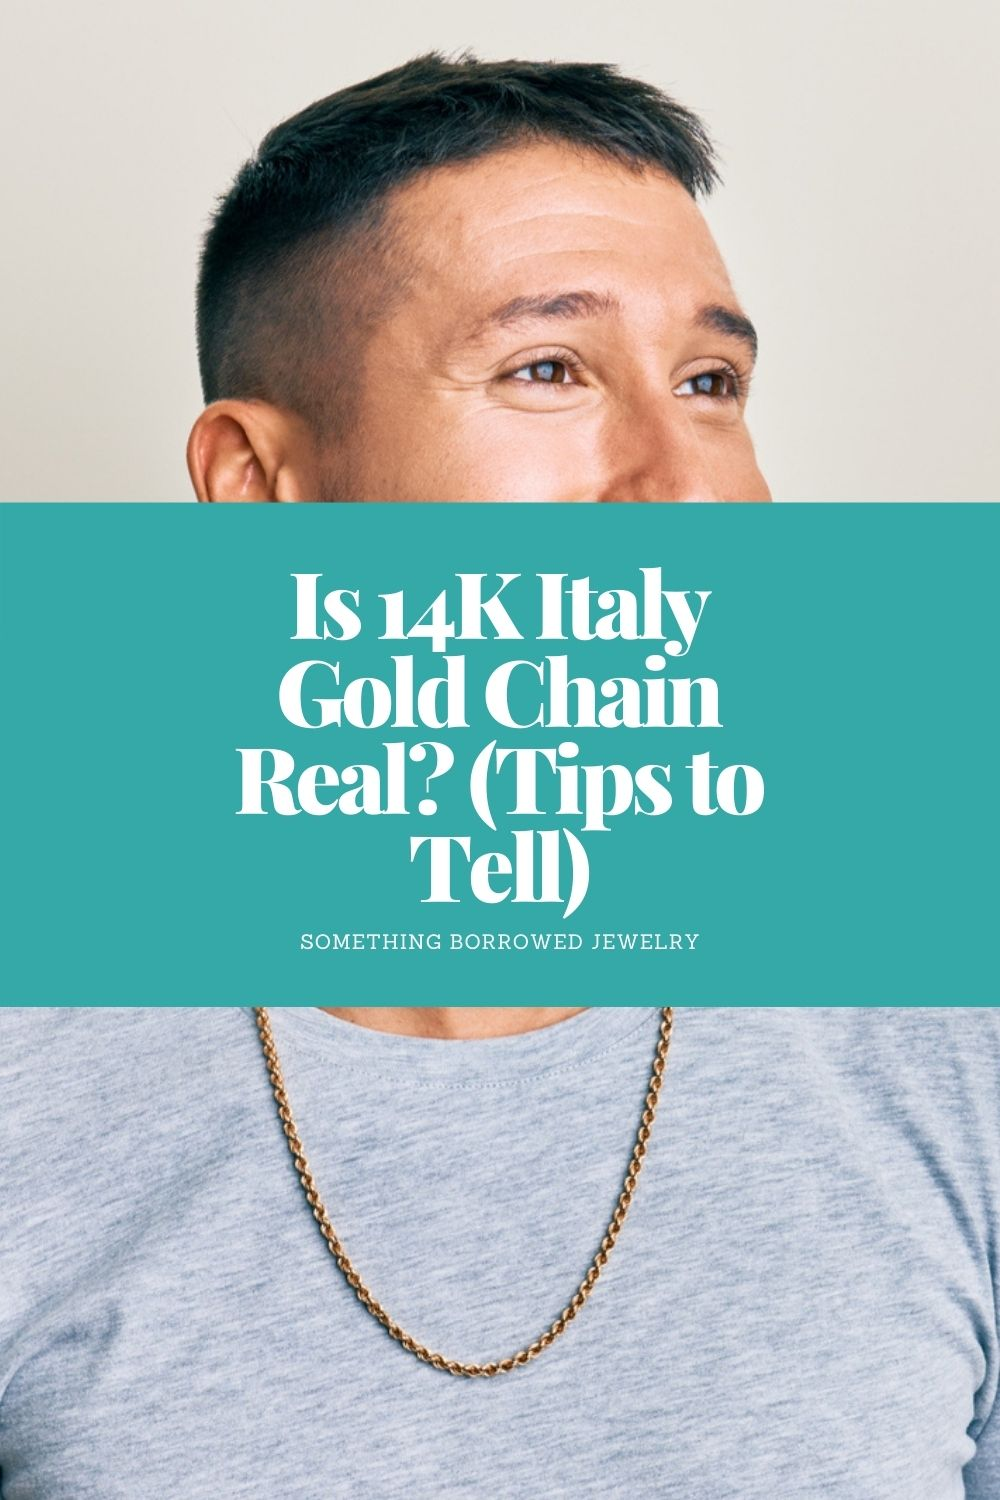 Is 14K Italy Gold Chain Real (Tips to Tell) pin 2